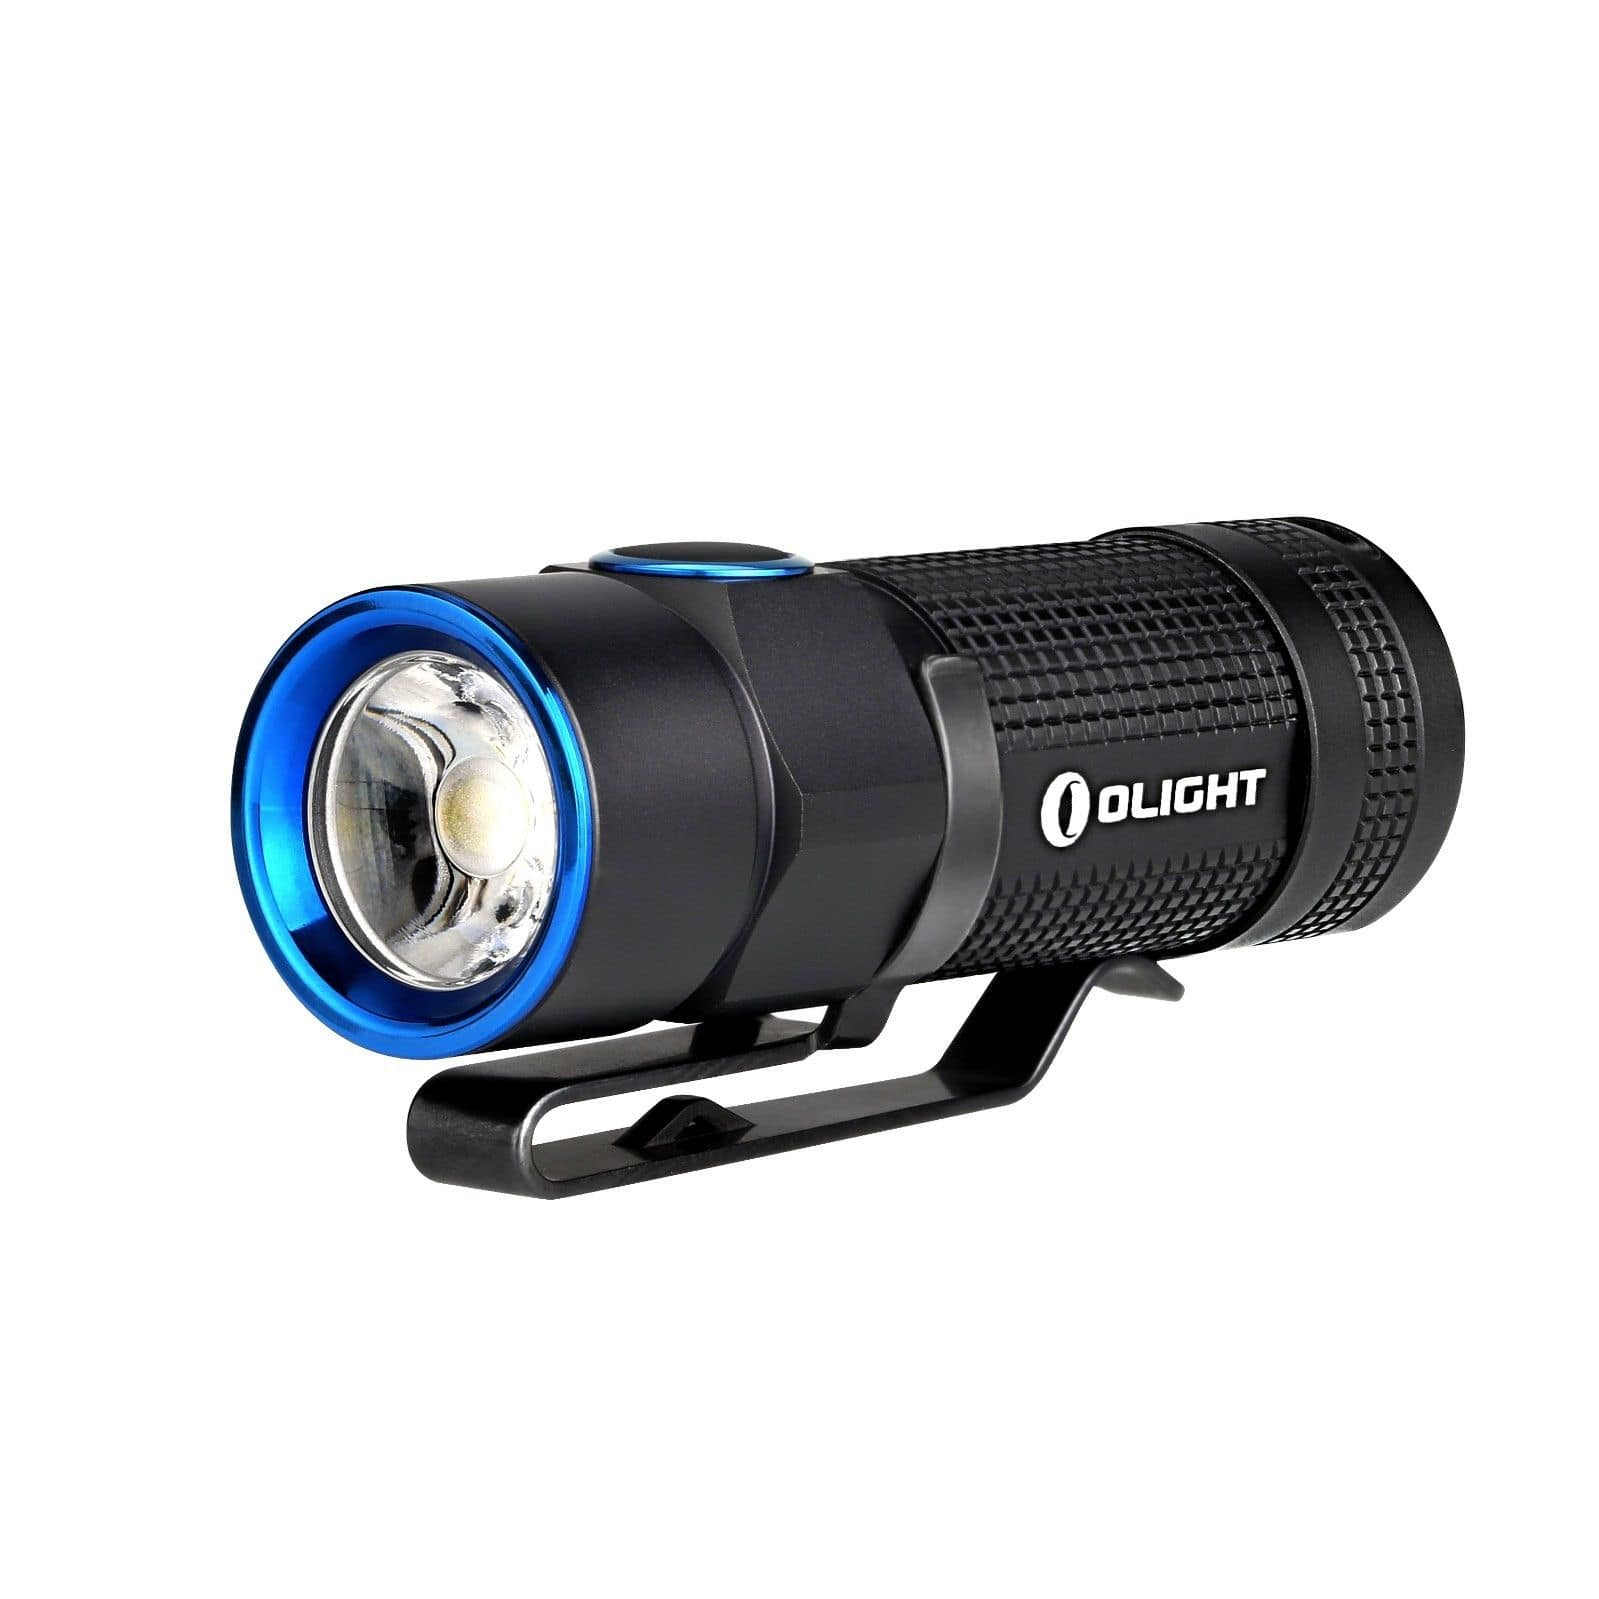 **Live** Olight S1R Baton 900 Lumens Cree LED Flashlight - $35.72 @OlightStore.com